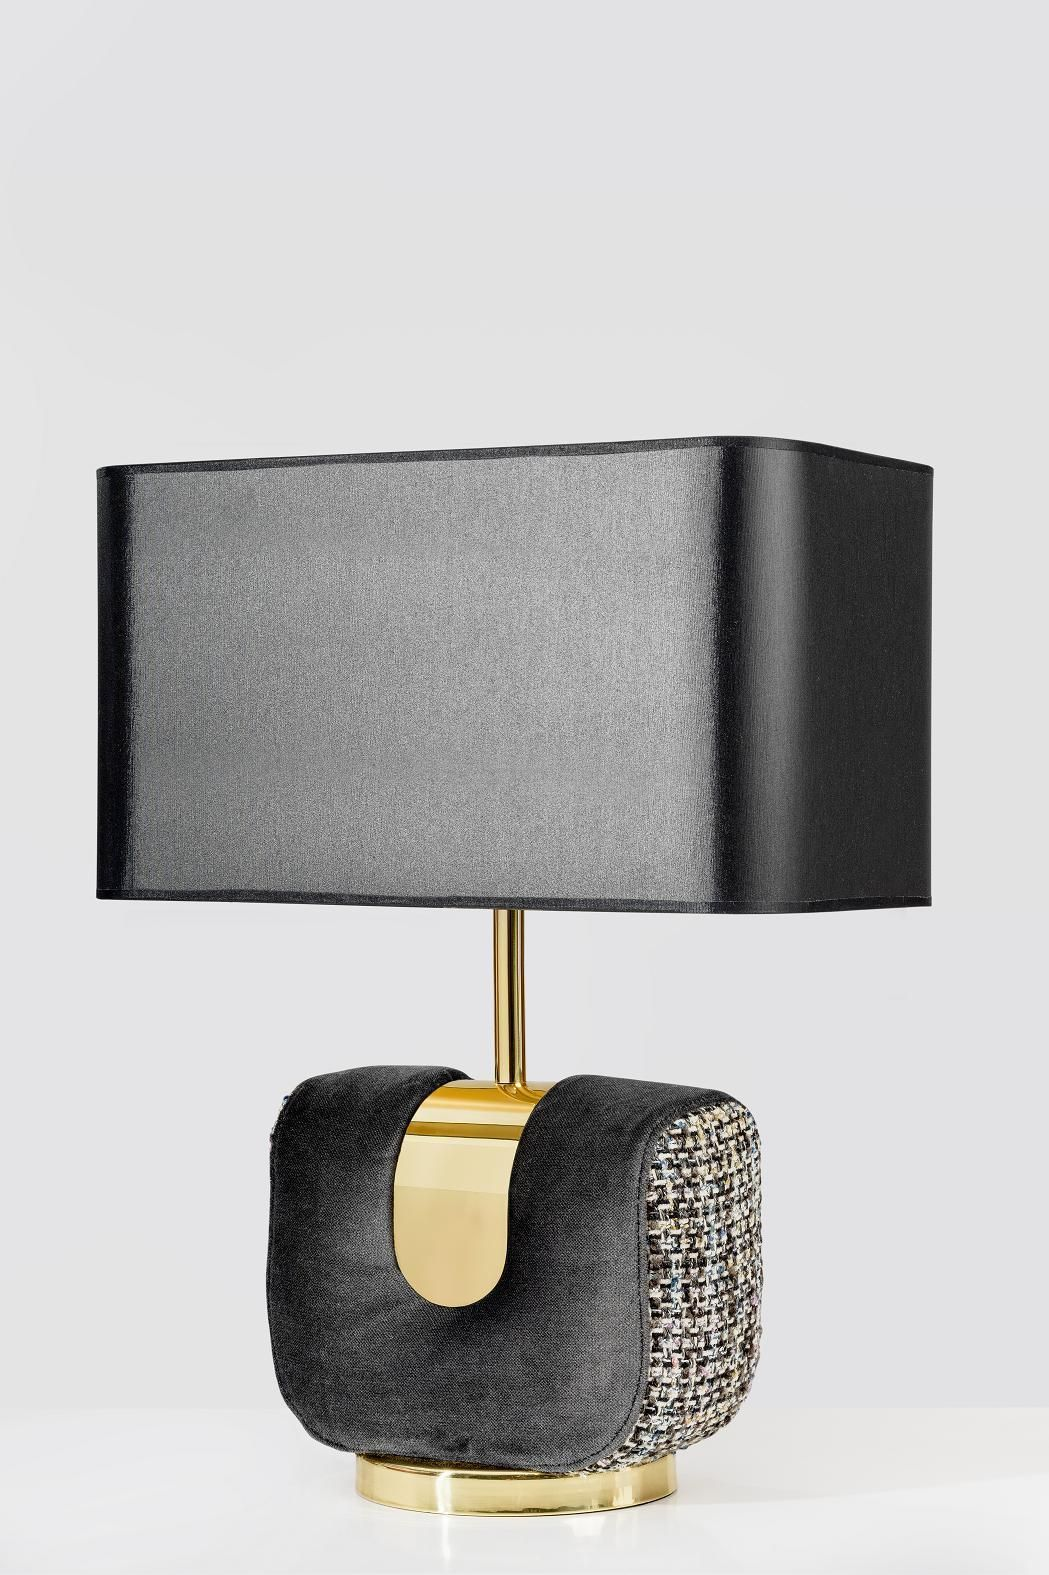 These lamps that dim are an astonishing acquisition to your household